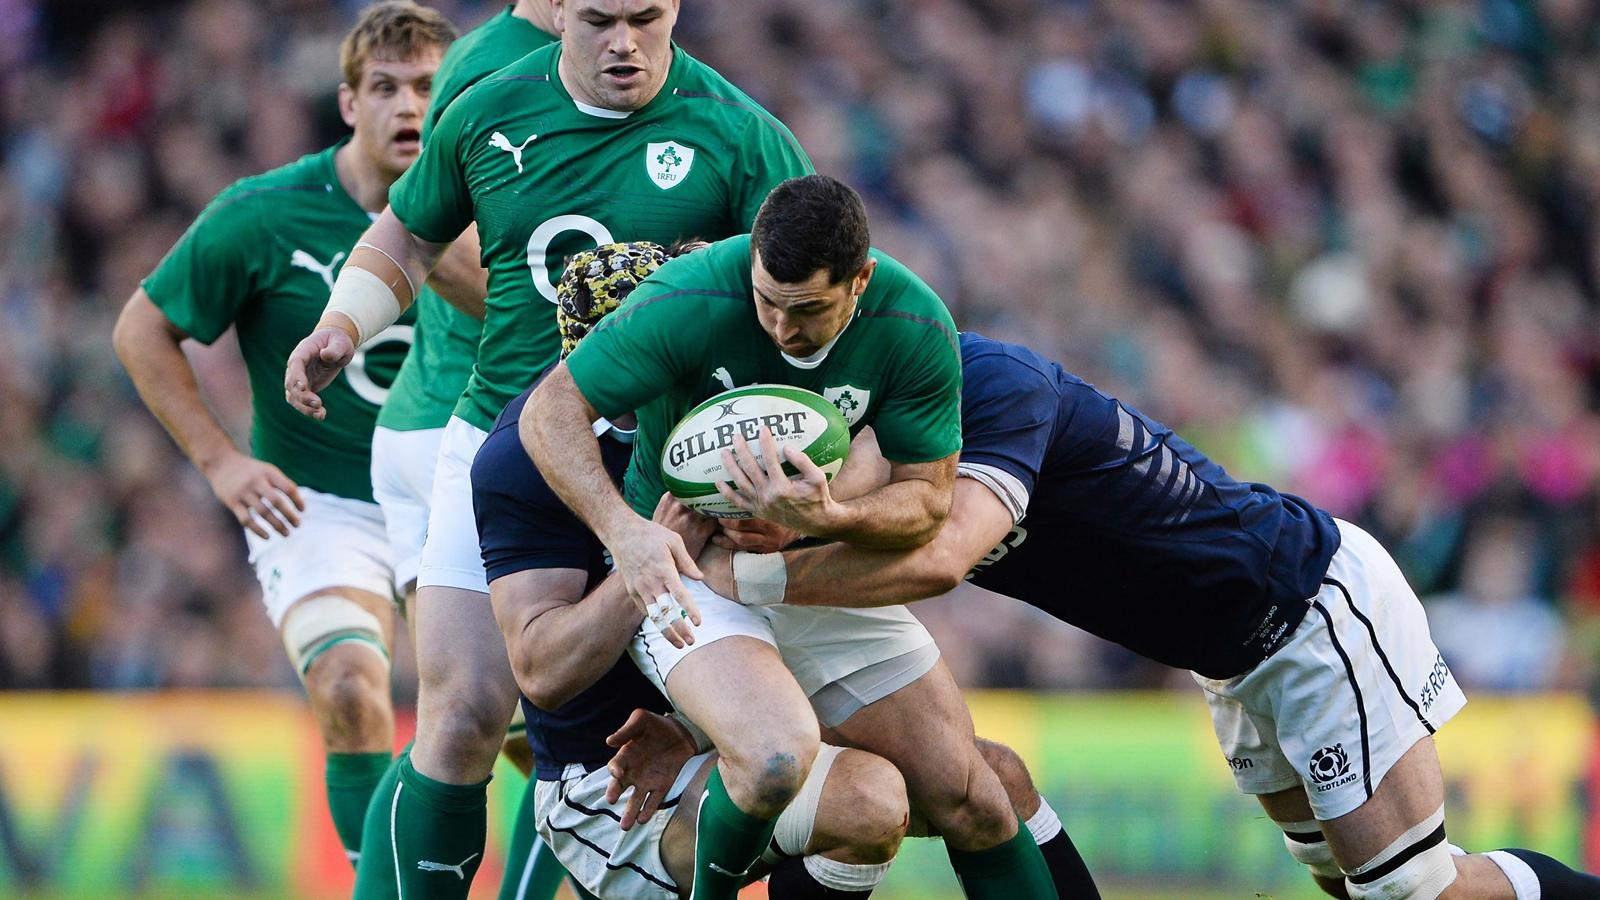 Tournoi des 6 nations 2014 irlande ecosse 28 6 l 39 irlande sa juste main 6 nations 2014 - Rugby coupe des 6 nations ...